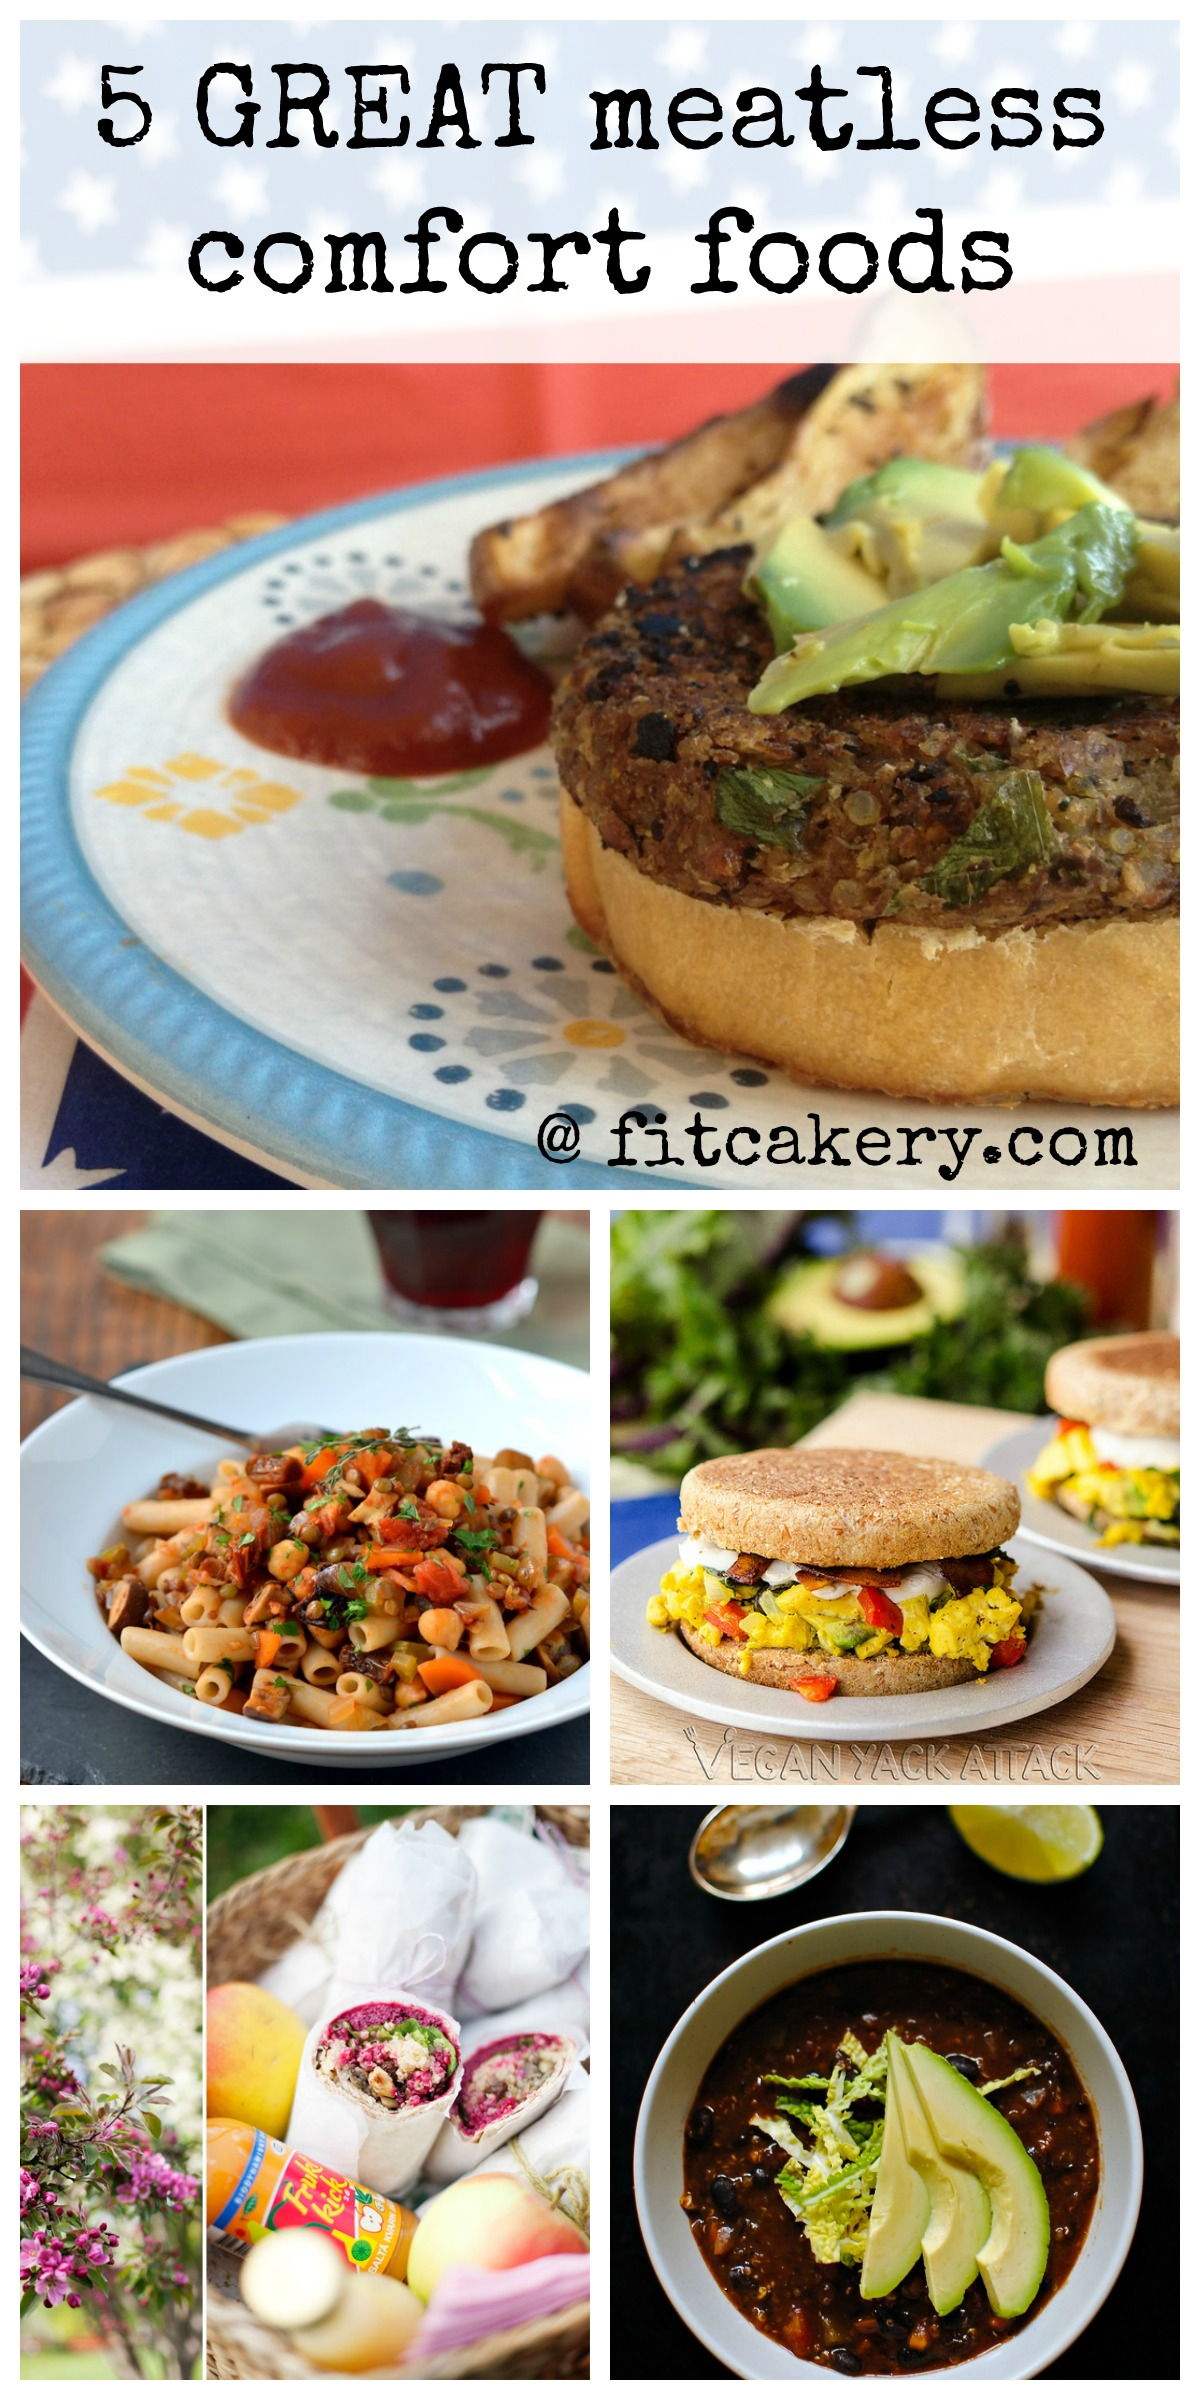 5 of the most soul-warming meat-free comfort foods I think I may ever meet! Yum! #vegetarianrecipes